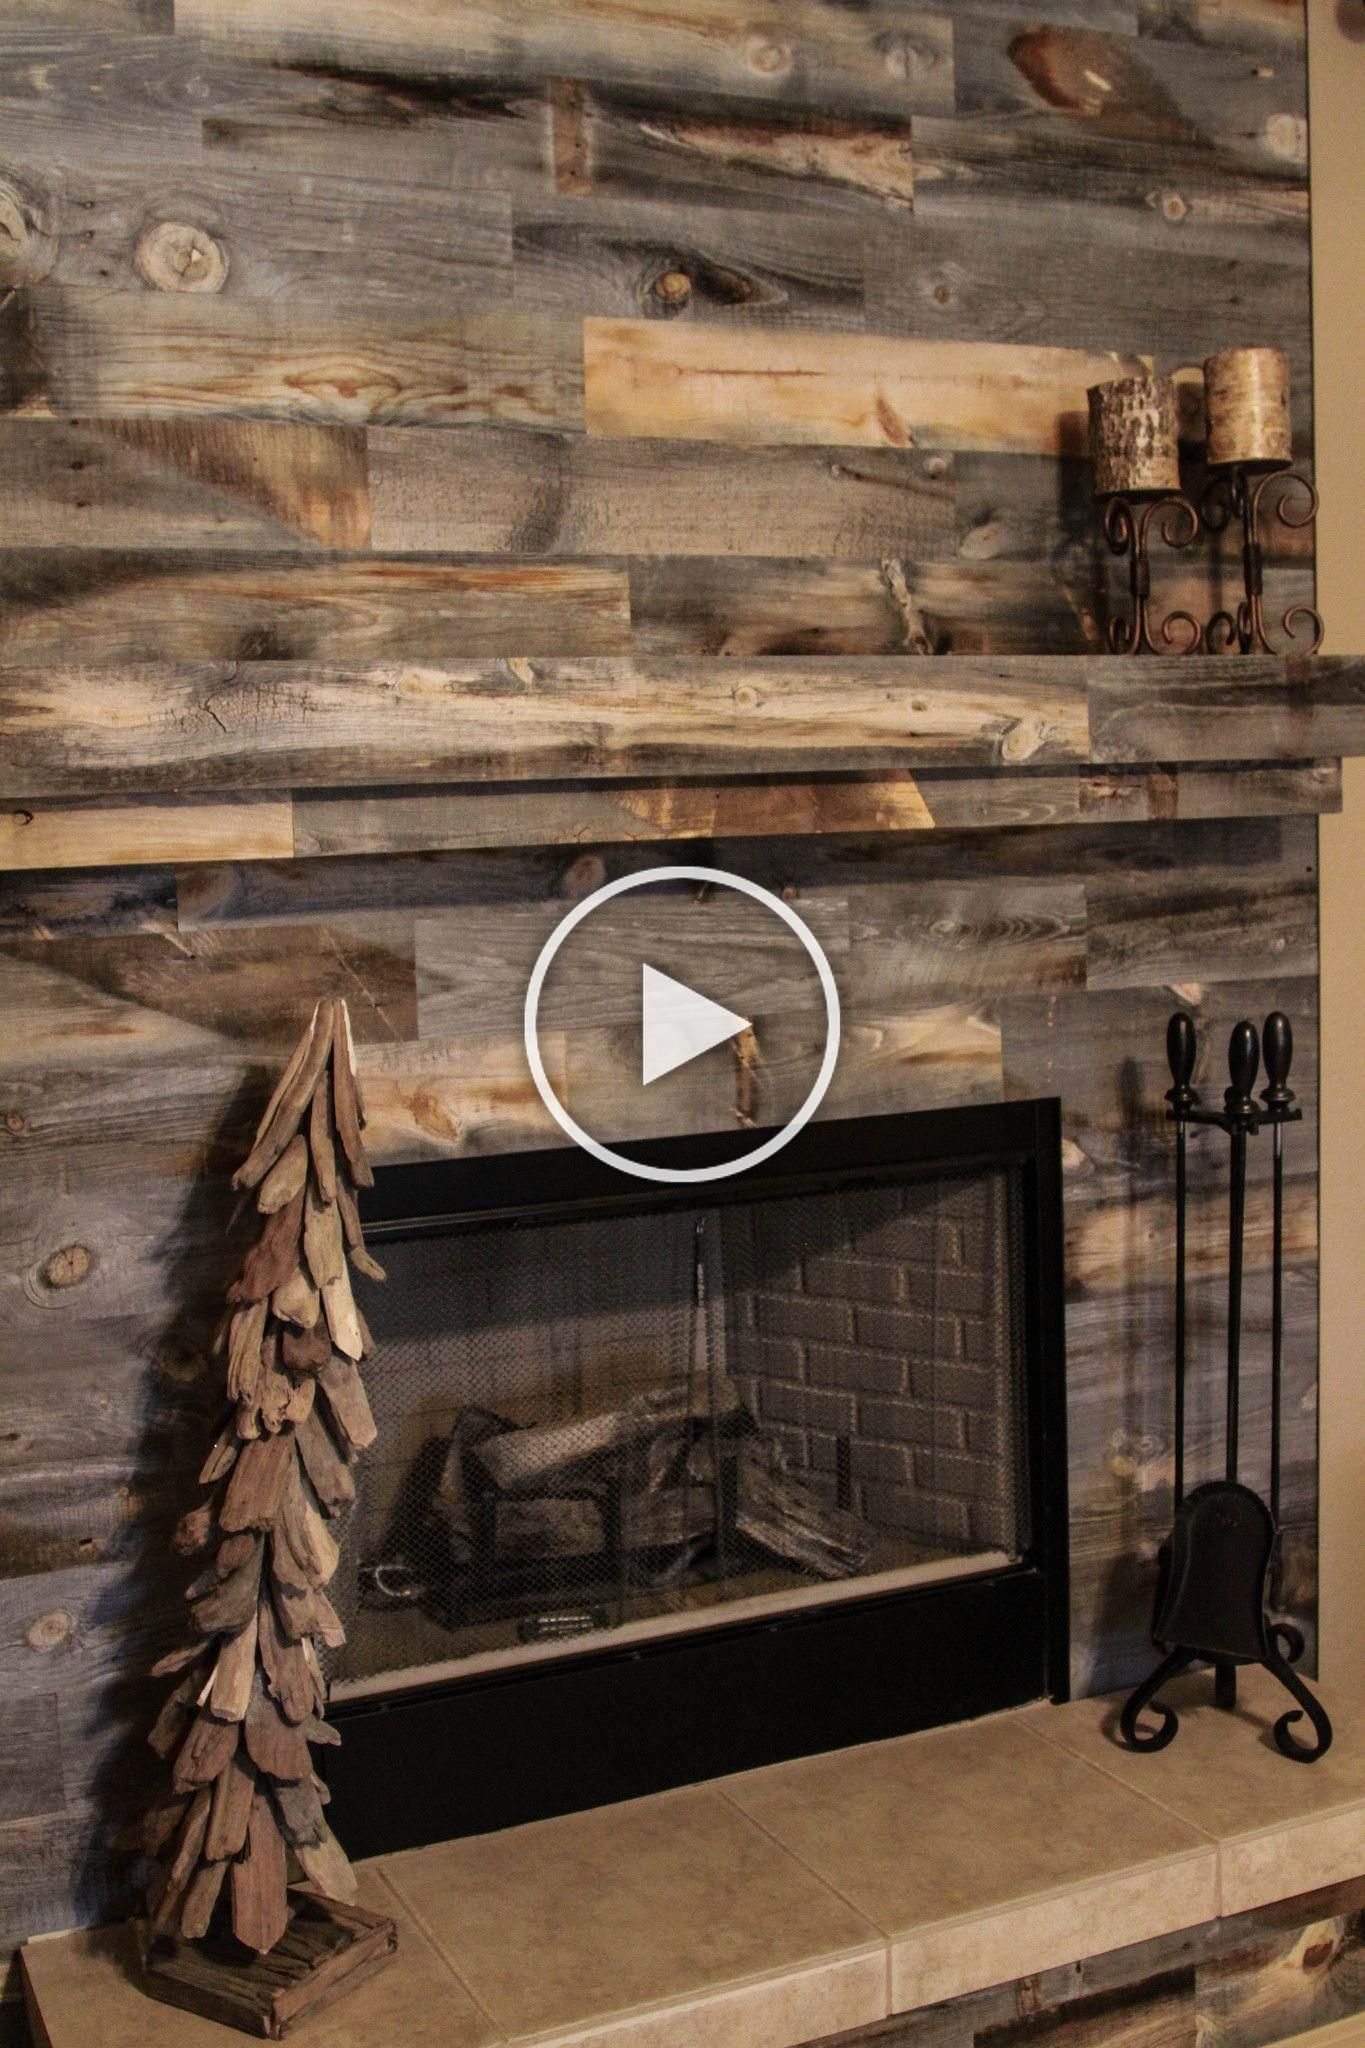 Looking For A Small Weekend Project To Complete Over The Weekend Take A Peek At These Fireplace Designs Using St In 2020 Rustikale Kamine Kamin Wand Kamin Umgestalten